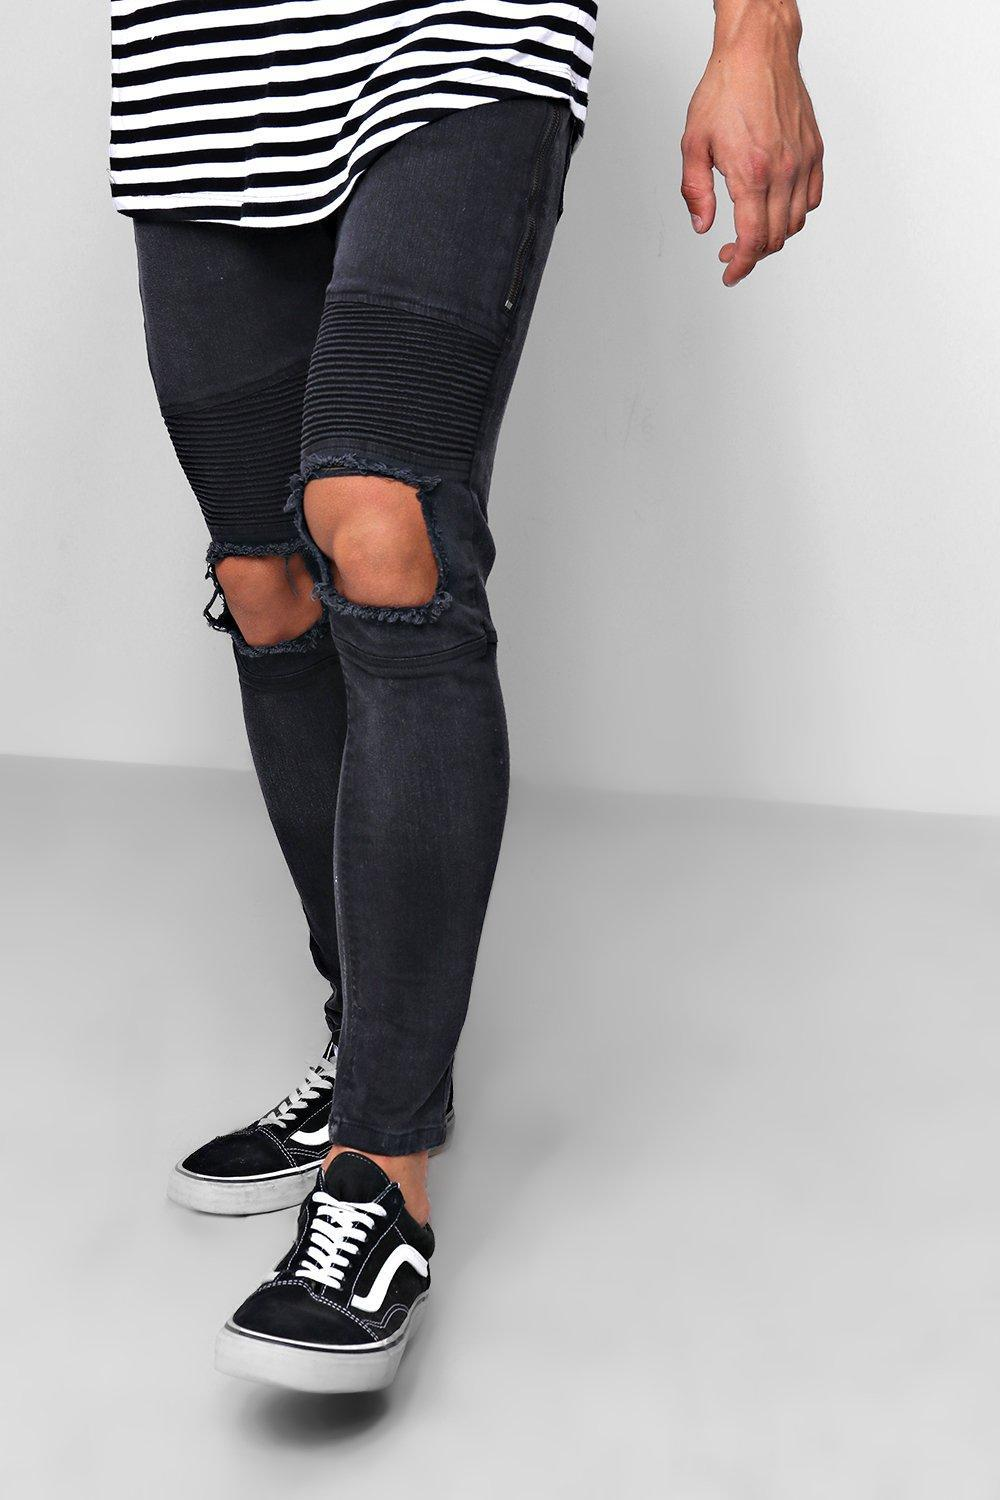 295dc07a329cb Boohoo - Black Skinny Fit Biker Jeans With Ripped Knee for Men - Lyst. View  fullscreen